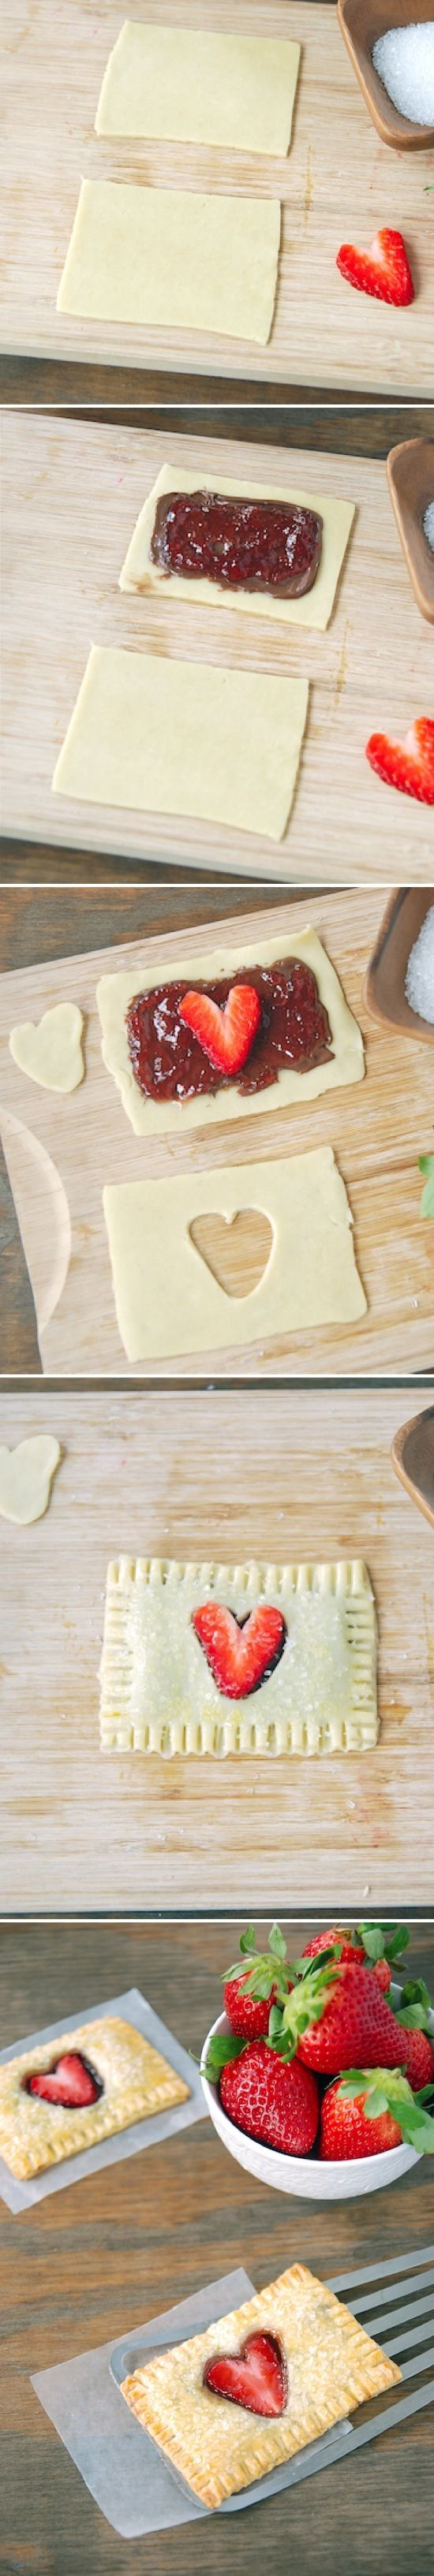 recipes with pictures, recipes in pictures, recipes pictures, pictures and recipes, pictures of recipes, strawberry heart pop tarts recipe